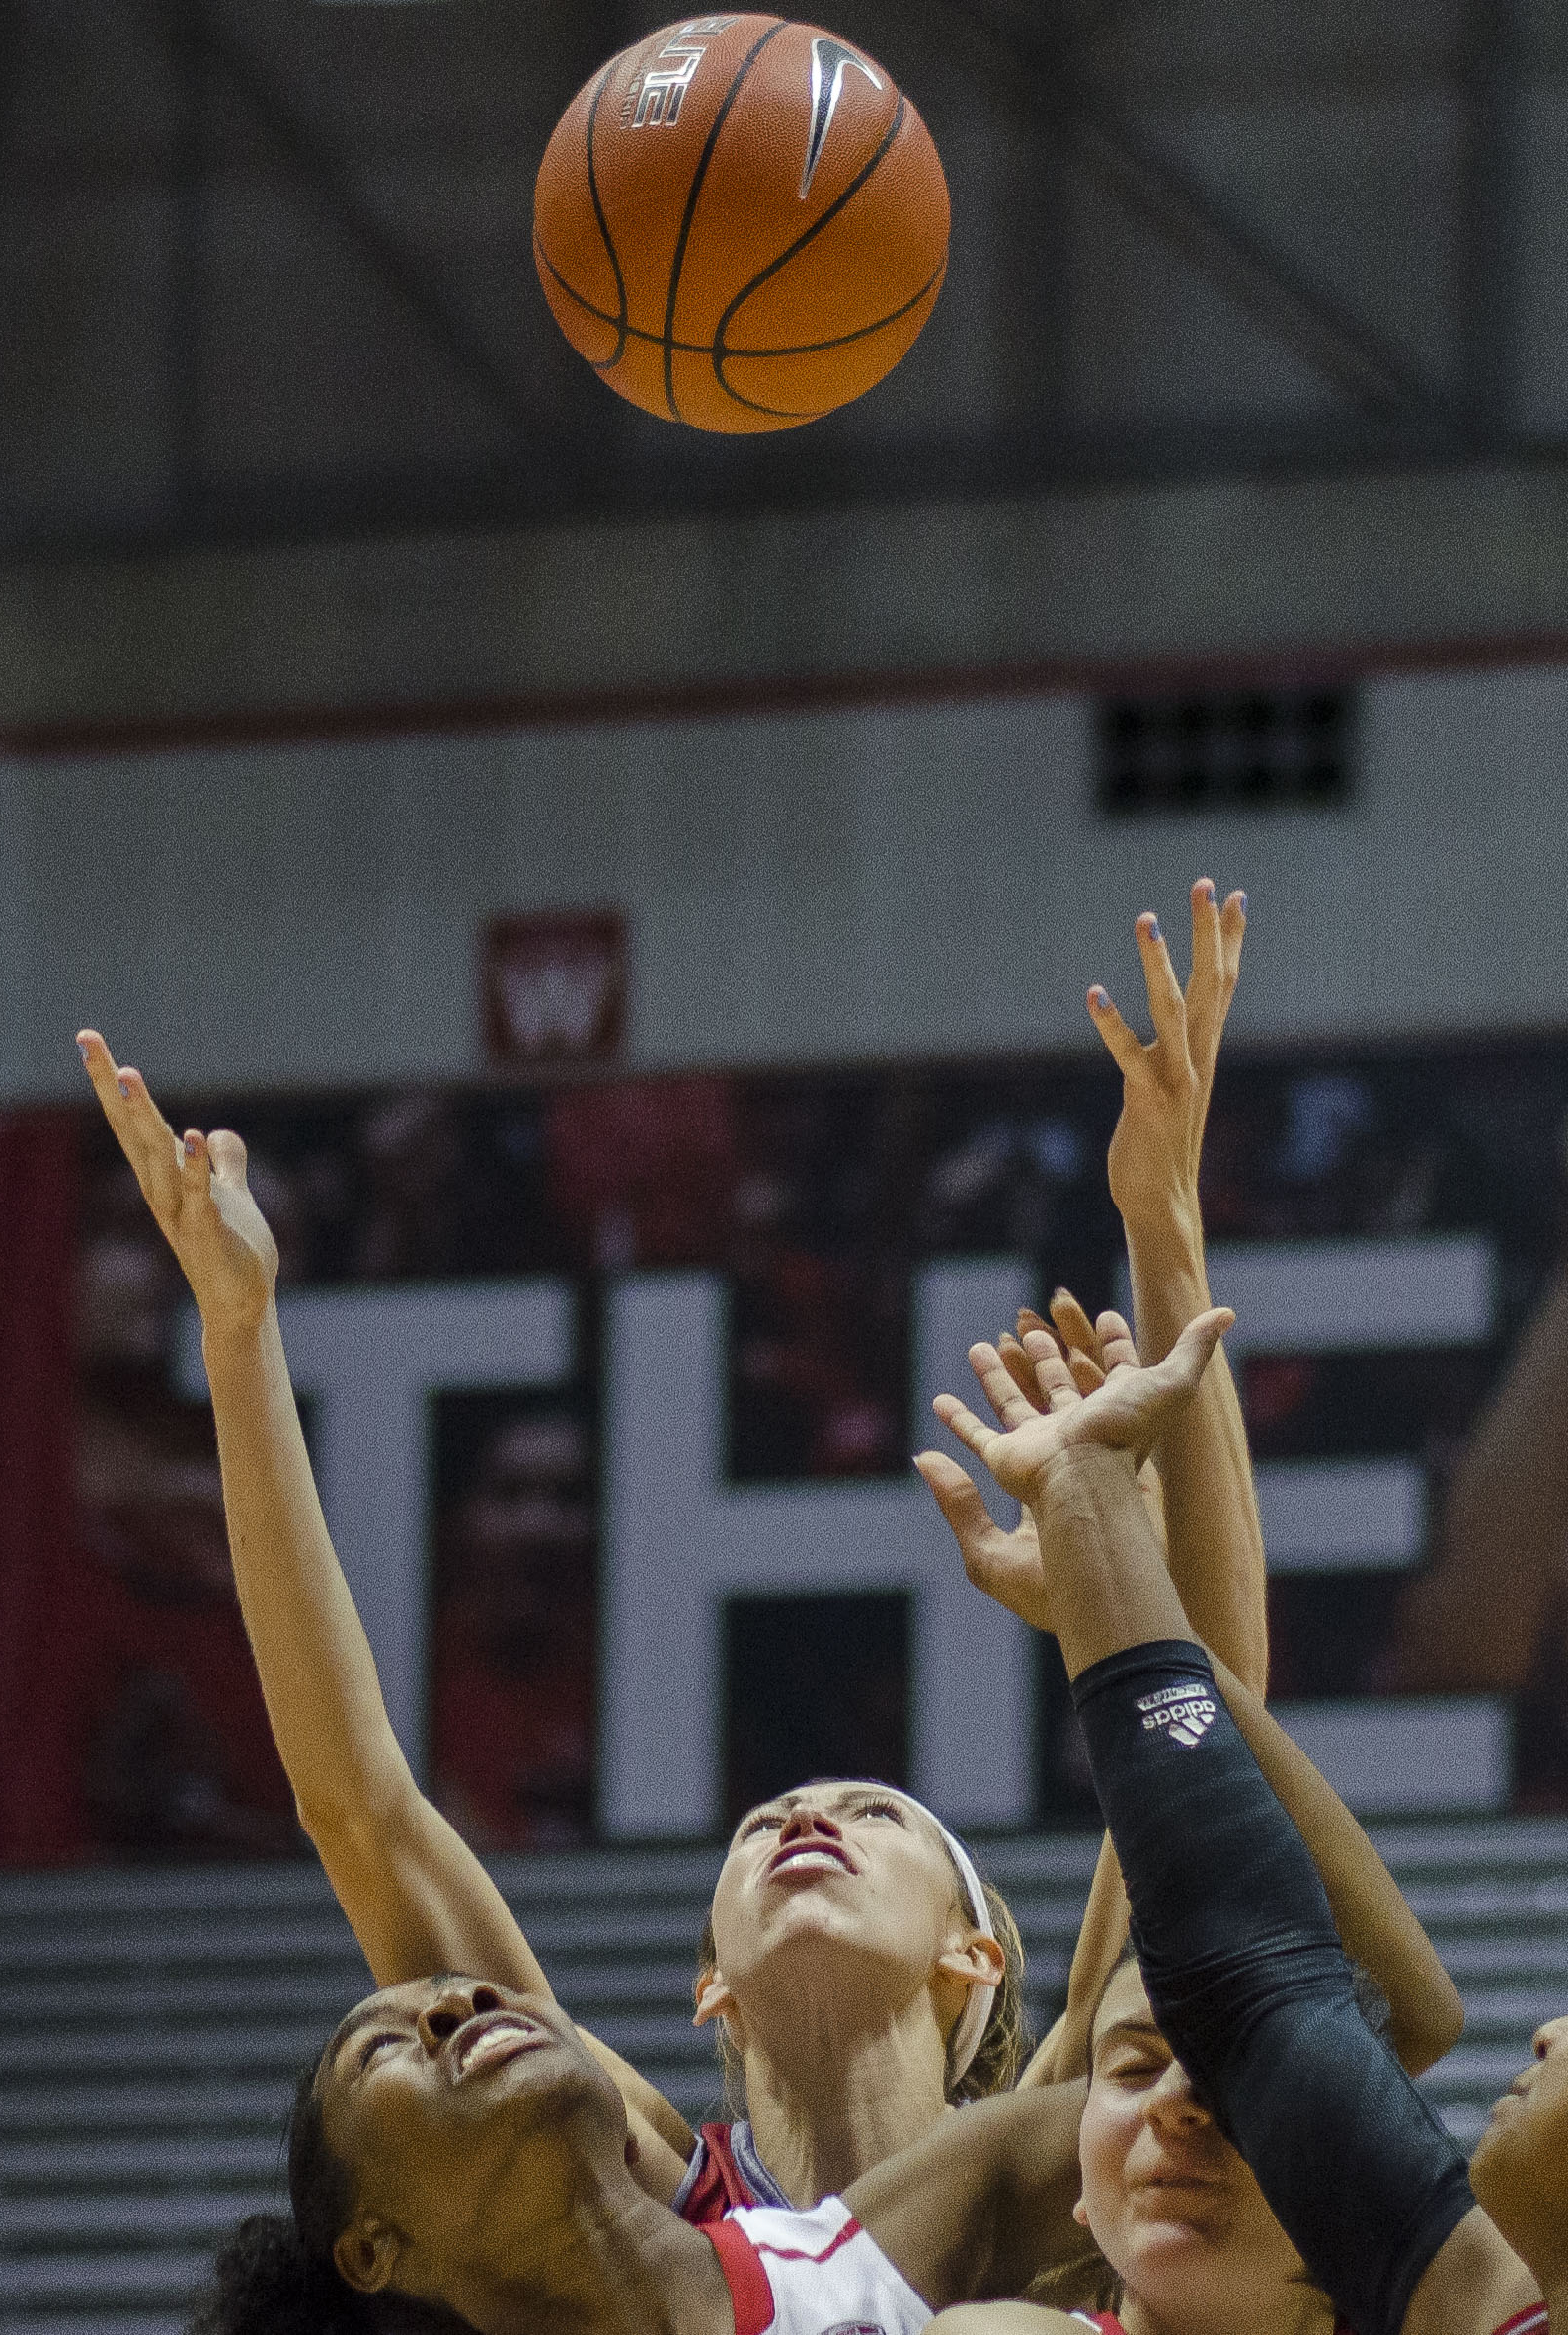 Members of the Ball State women's basketball game reach for a rebound in the game against Miami on Jan. 9, 2016, at Worthen Arena. Ball State won 66-41.